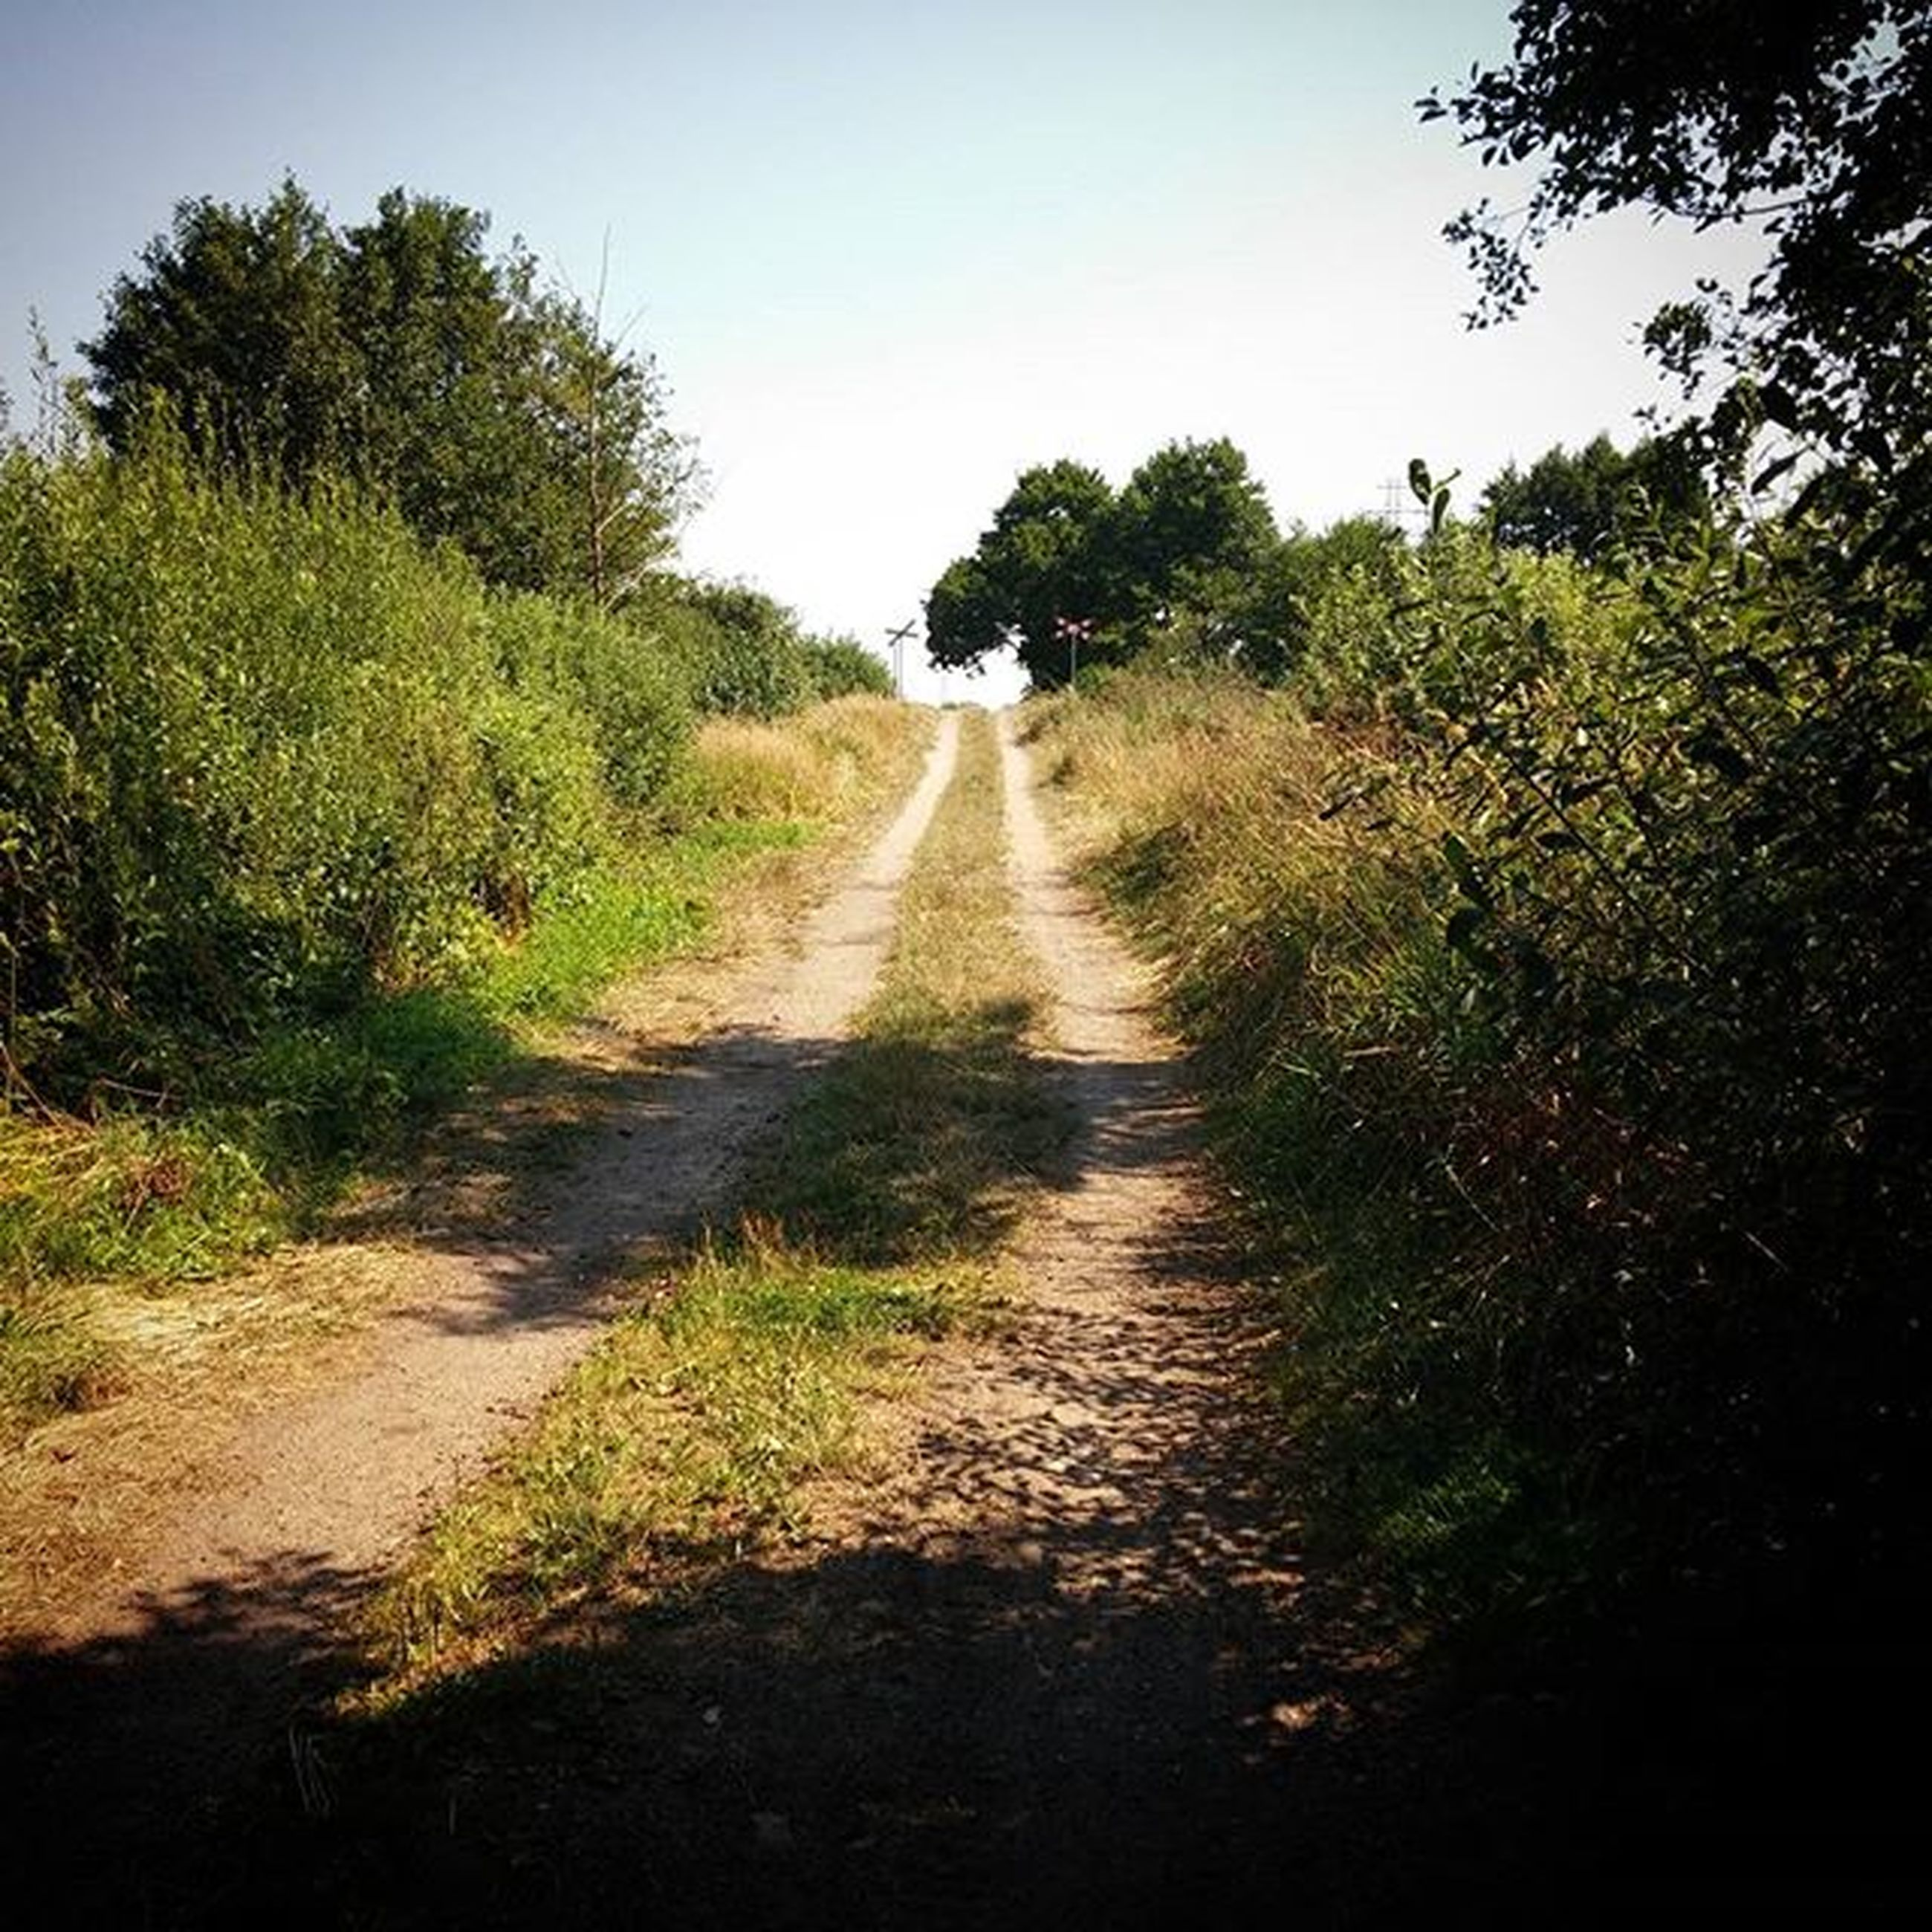 the way forward, diminishing perspective, vanishing point, tree, grass, dirt road, clear sky, tranquility, transportation, road, growth, tranquil scene, nature, landscape, narrow, country road, long, field, plant, footpath